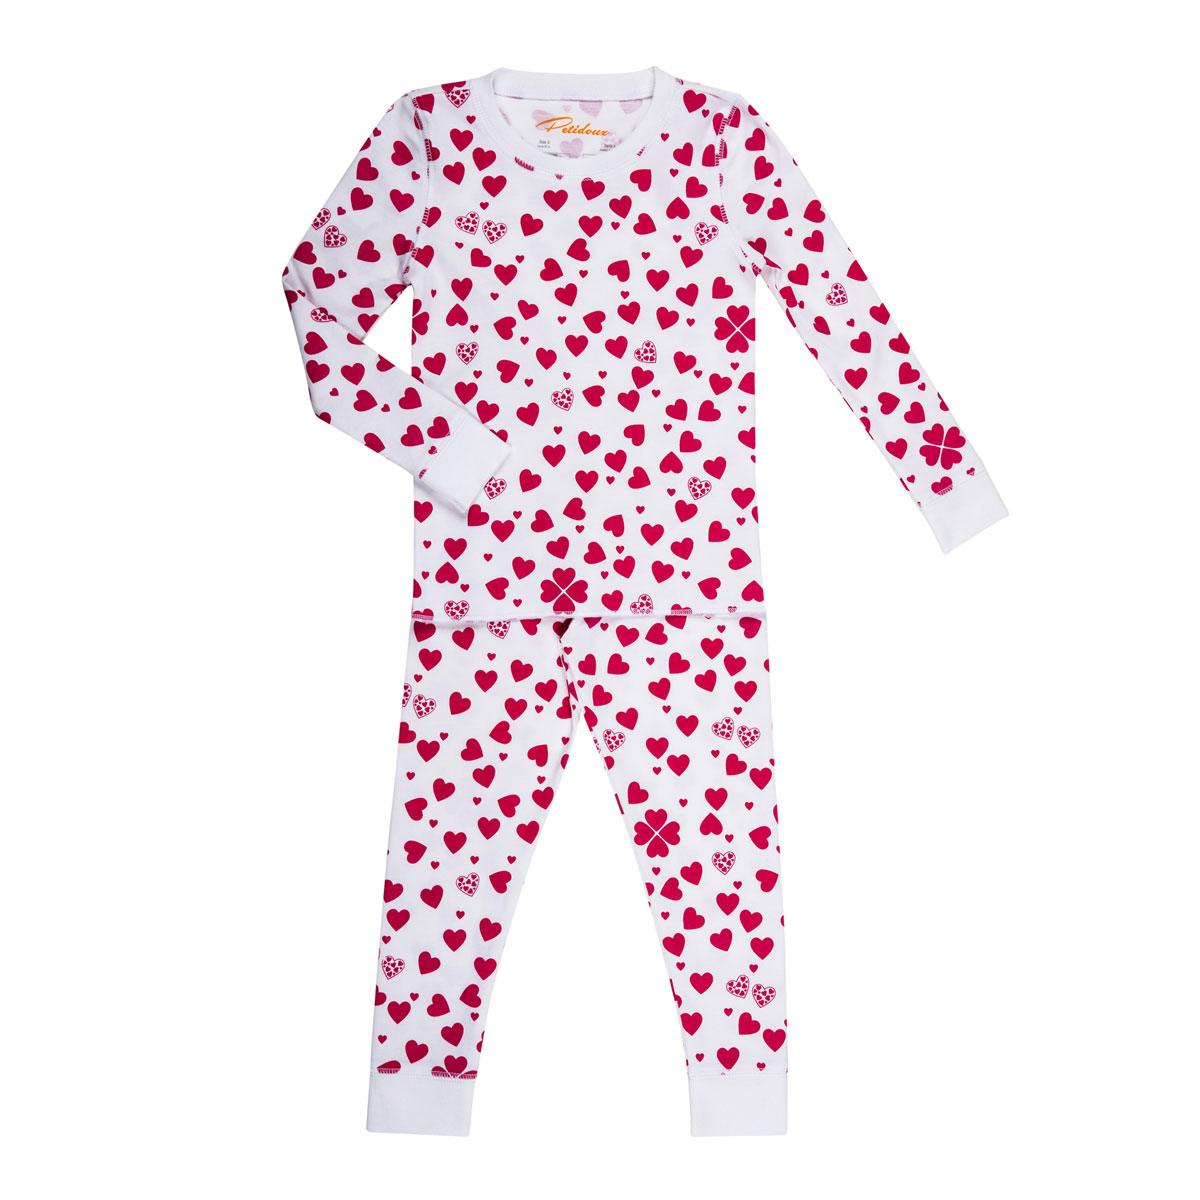 Petidoux Pajamas in Hearts